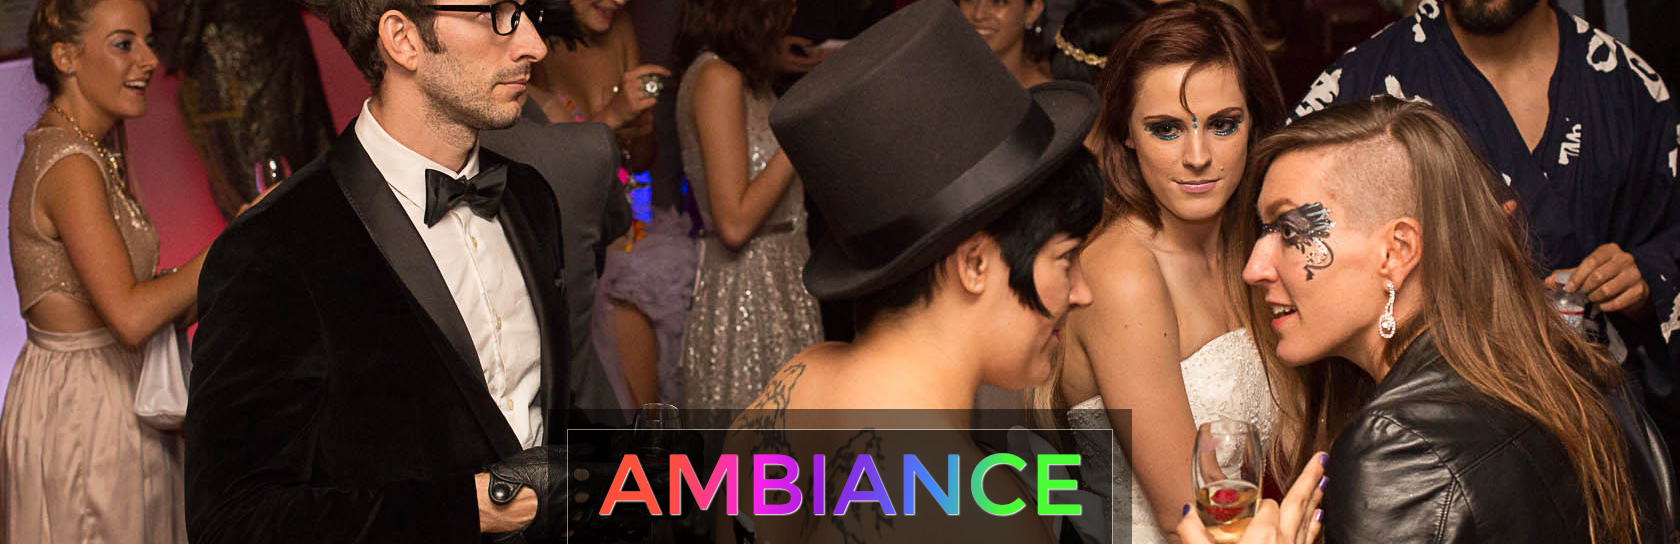 party ambiance, djs, and live decor by artistic la